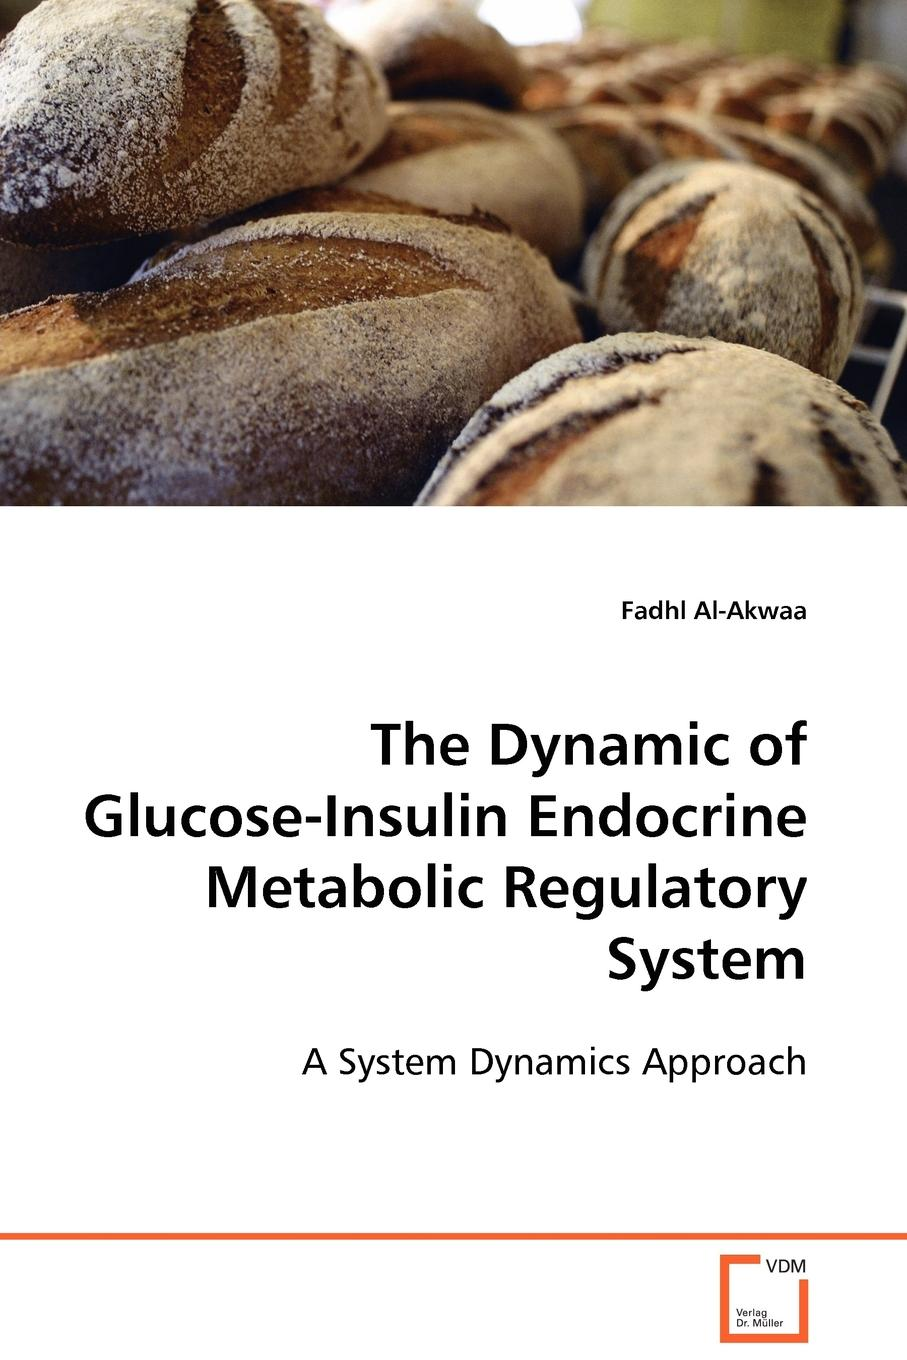 Fadhl Al-Akwaa The Dynamic of Glucose-Insulin Endocrine Metabolic Regulatory System prevalance of metabolic syndrome in baghdad